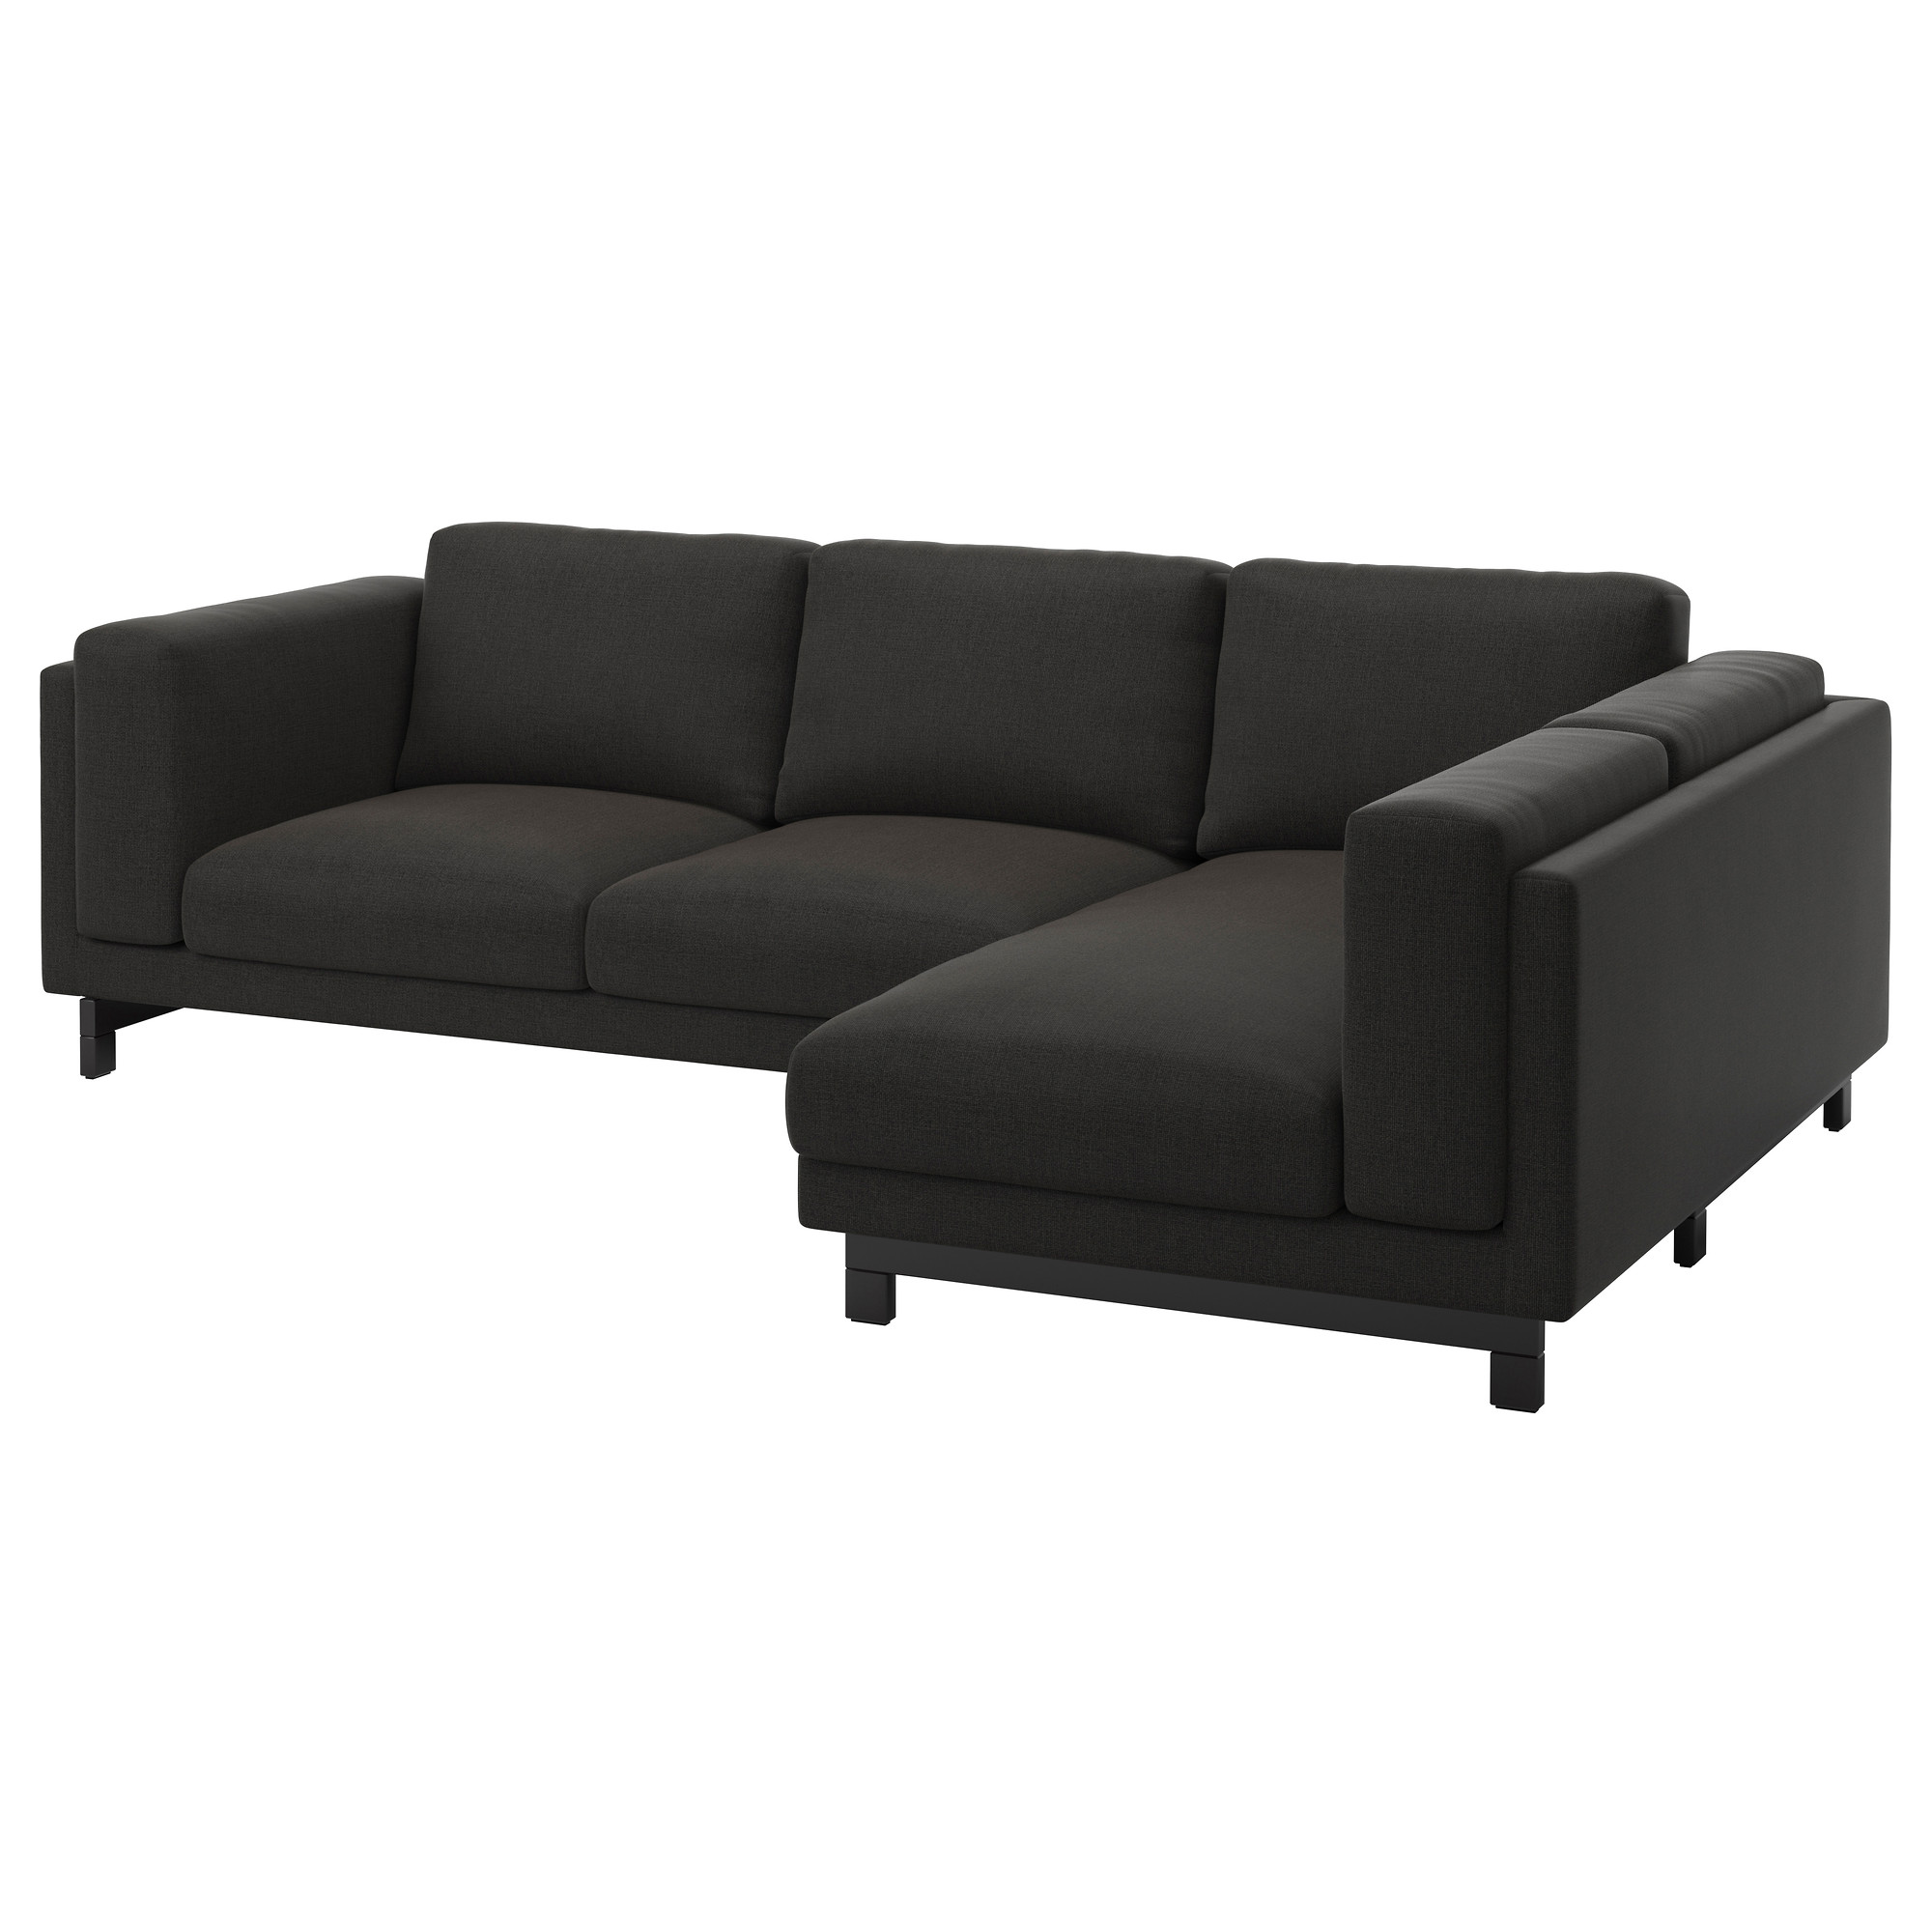 NOCKEBY Sectional, 3 Seat, Right   Right/Tenö Dark Gray, With Chaise/wood    IKEA Part 3